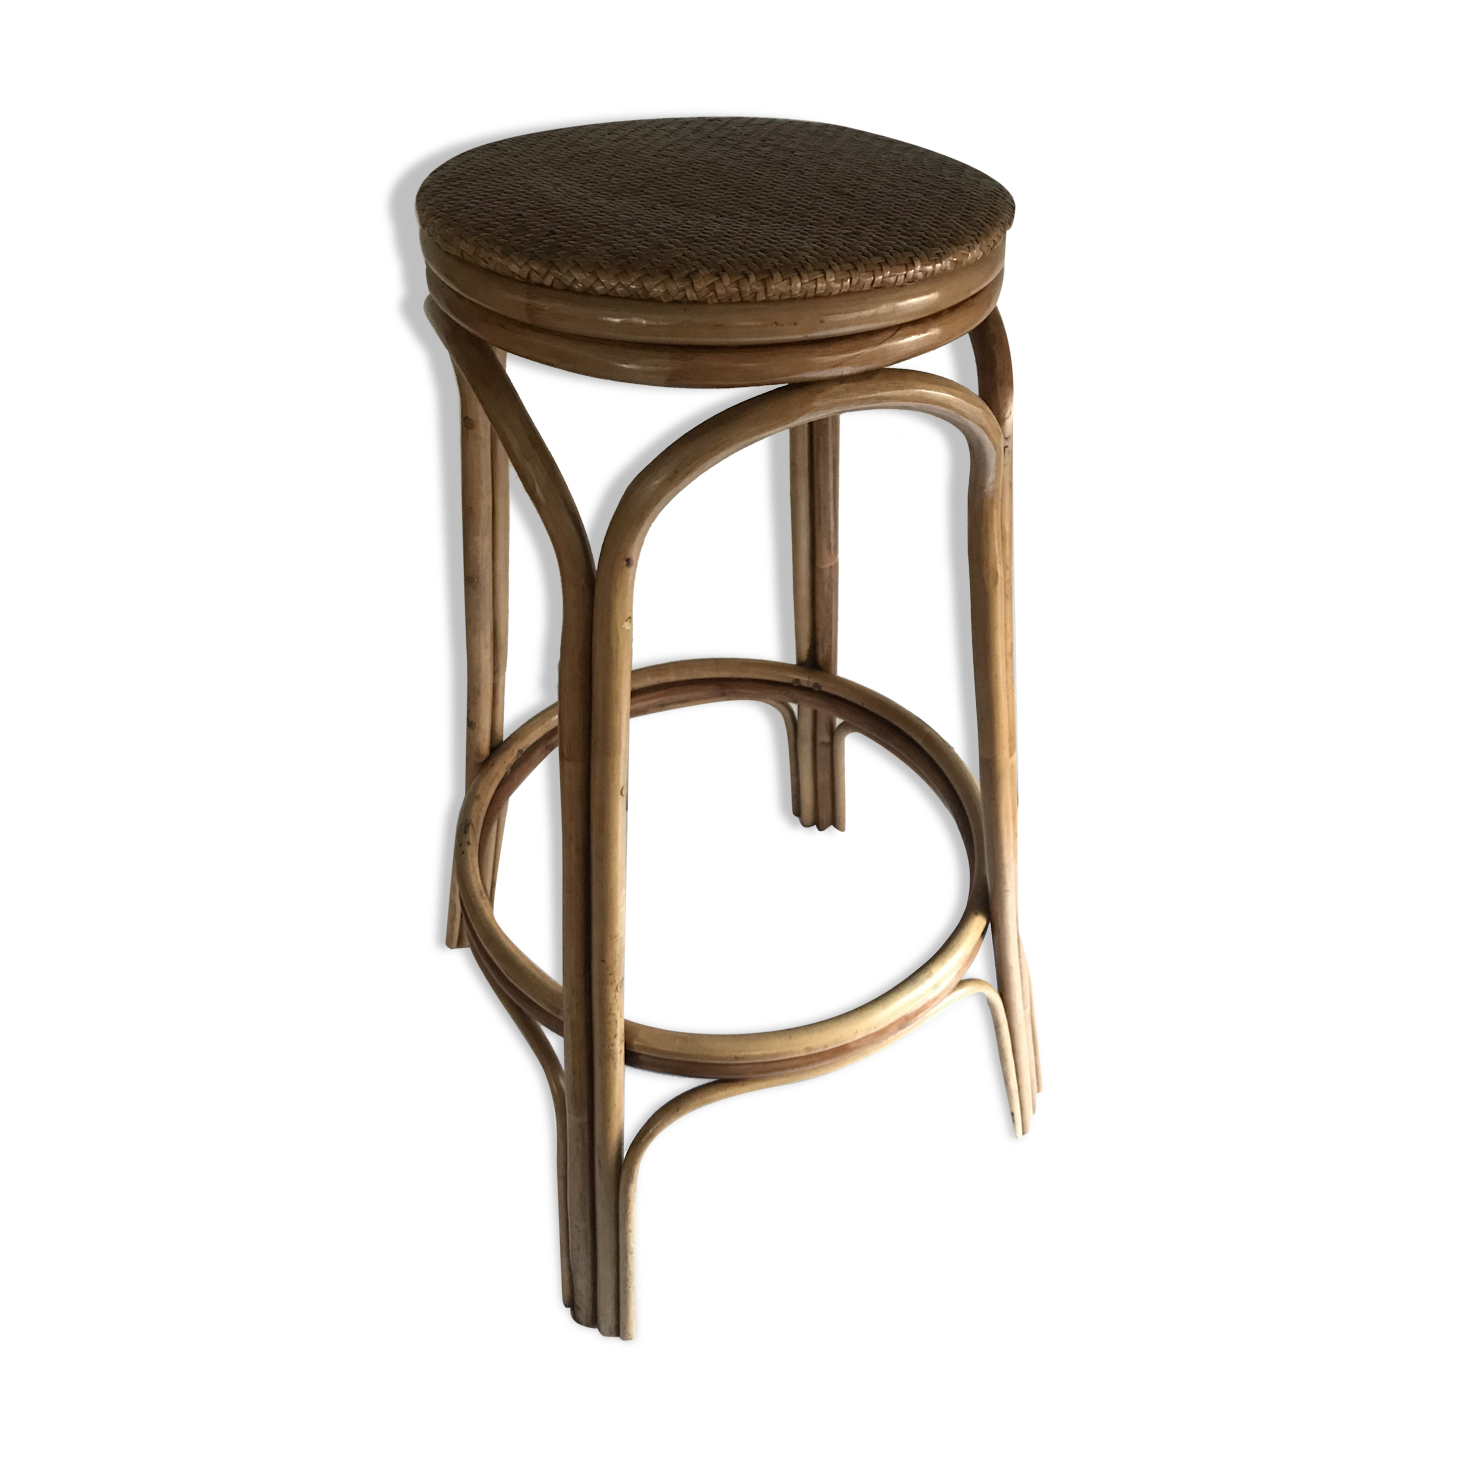 tabouret de bar haut elegant alinea tabouret de bar good. Black Bedroom Furniture Sets. Home Design Ideas